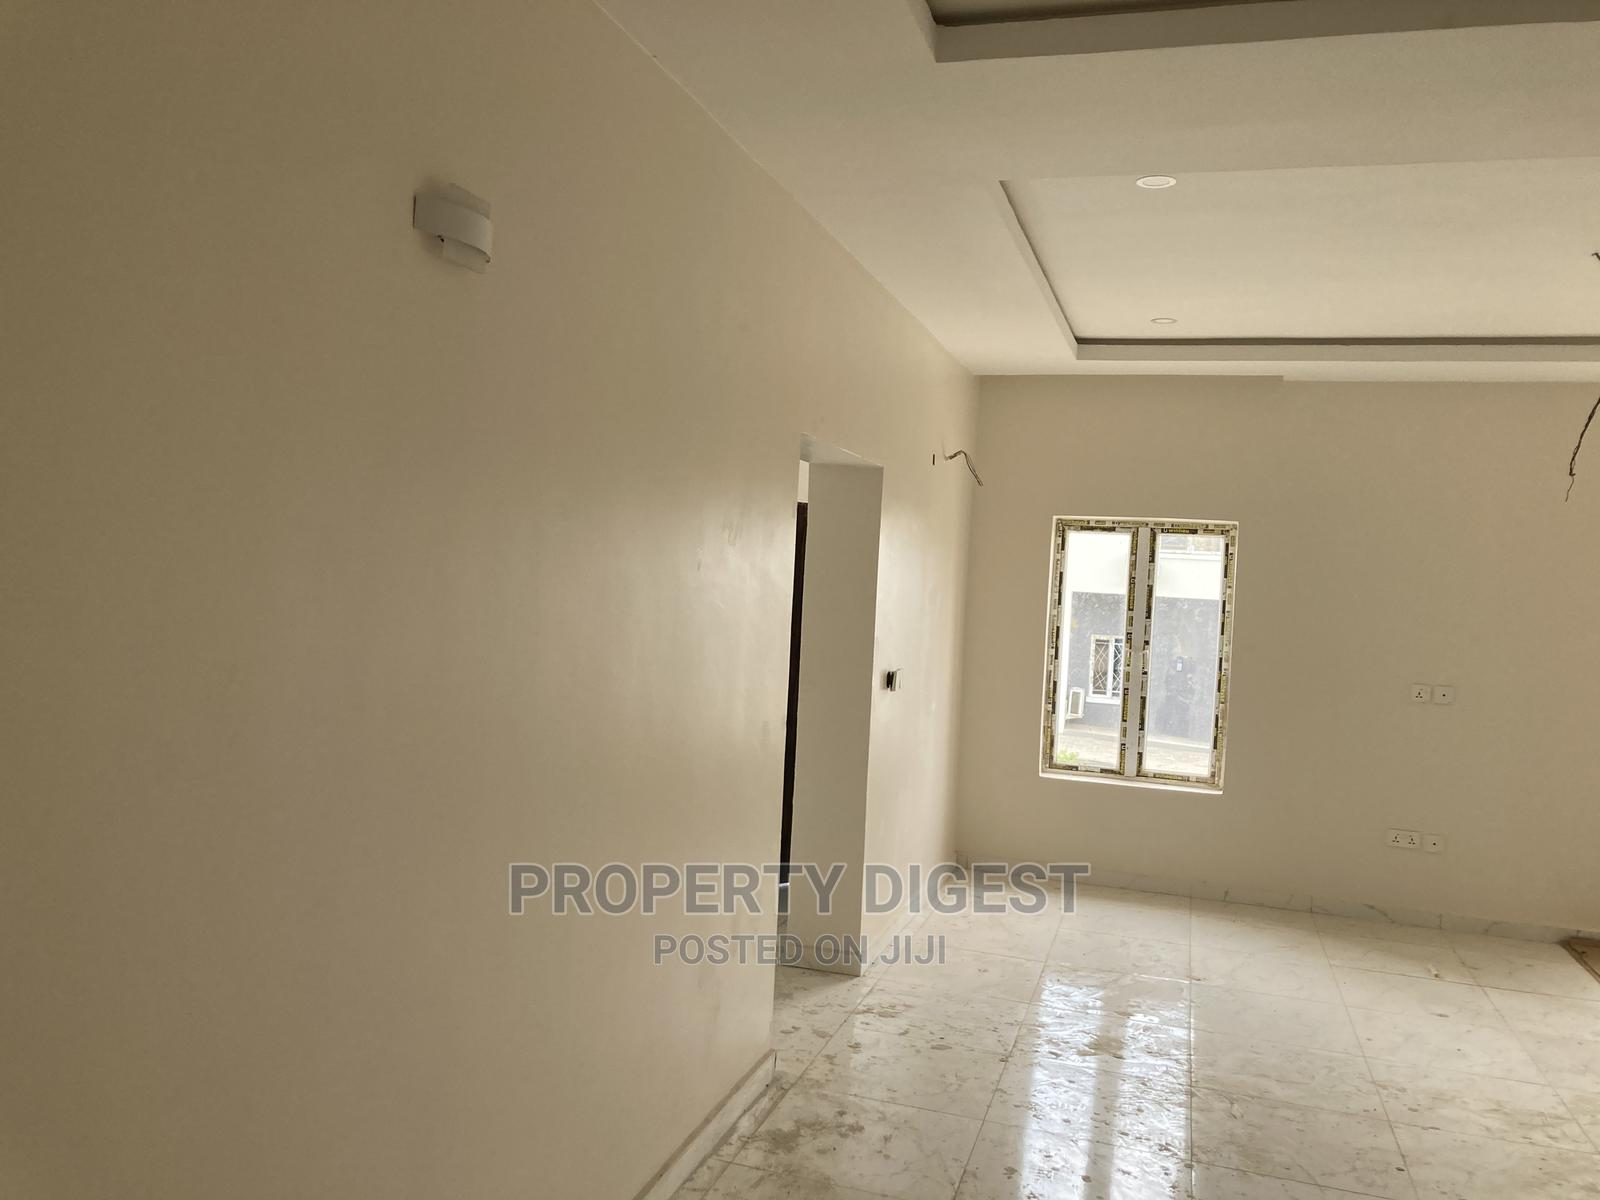 5bdrm Duplex in Wuye for Sale   Houses & Apartments For Sale for sale in Wuye, Abuja (FCT) State, Nigeria